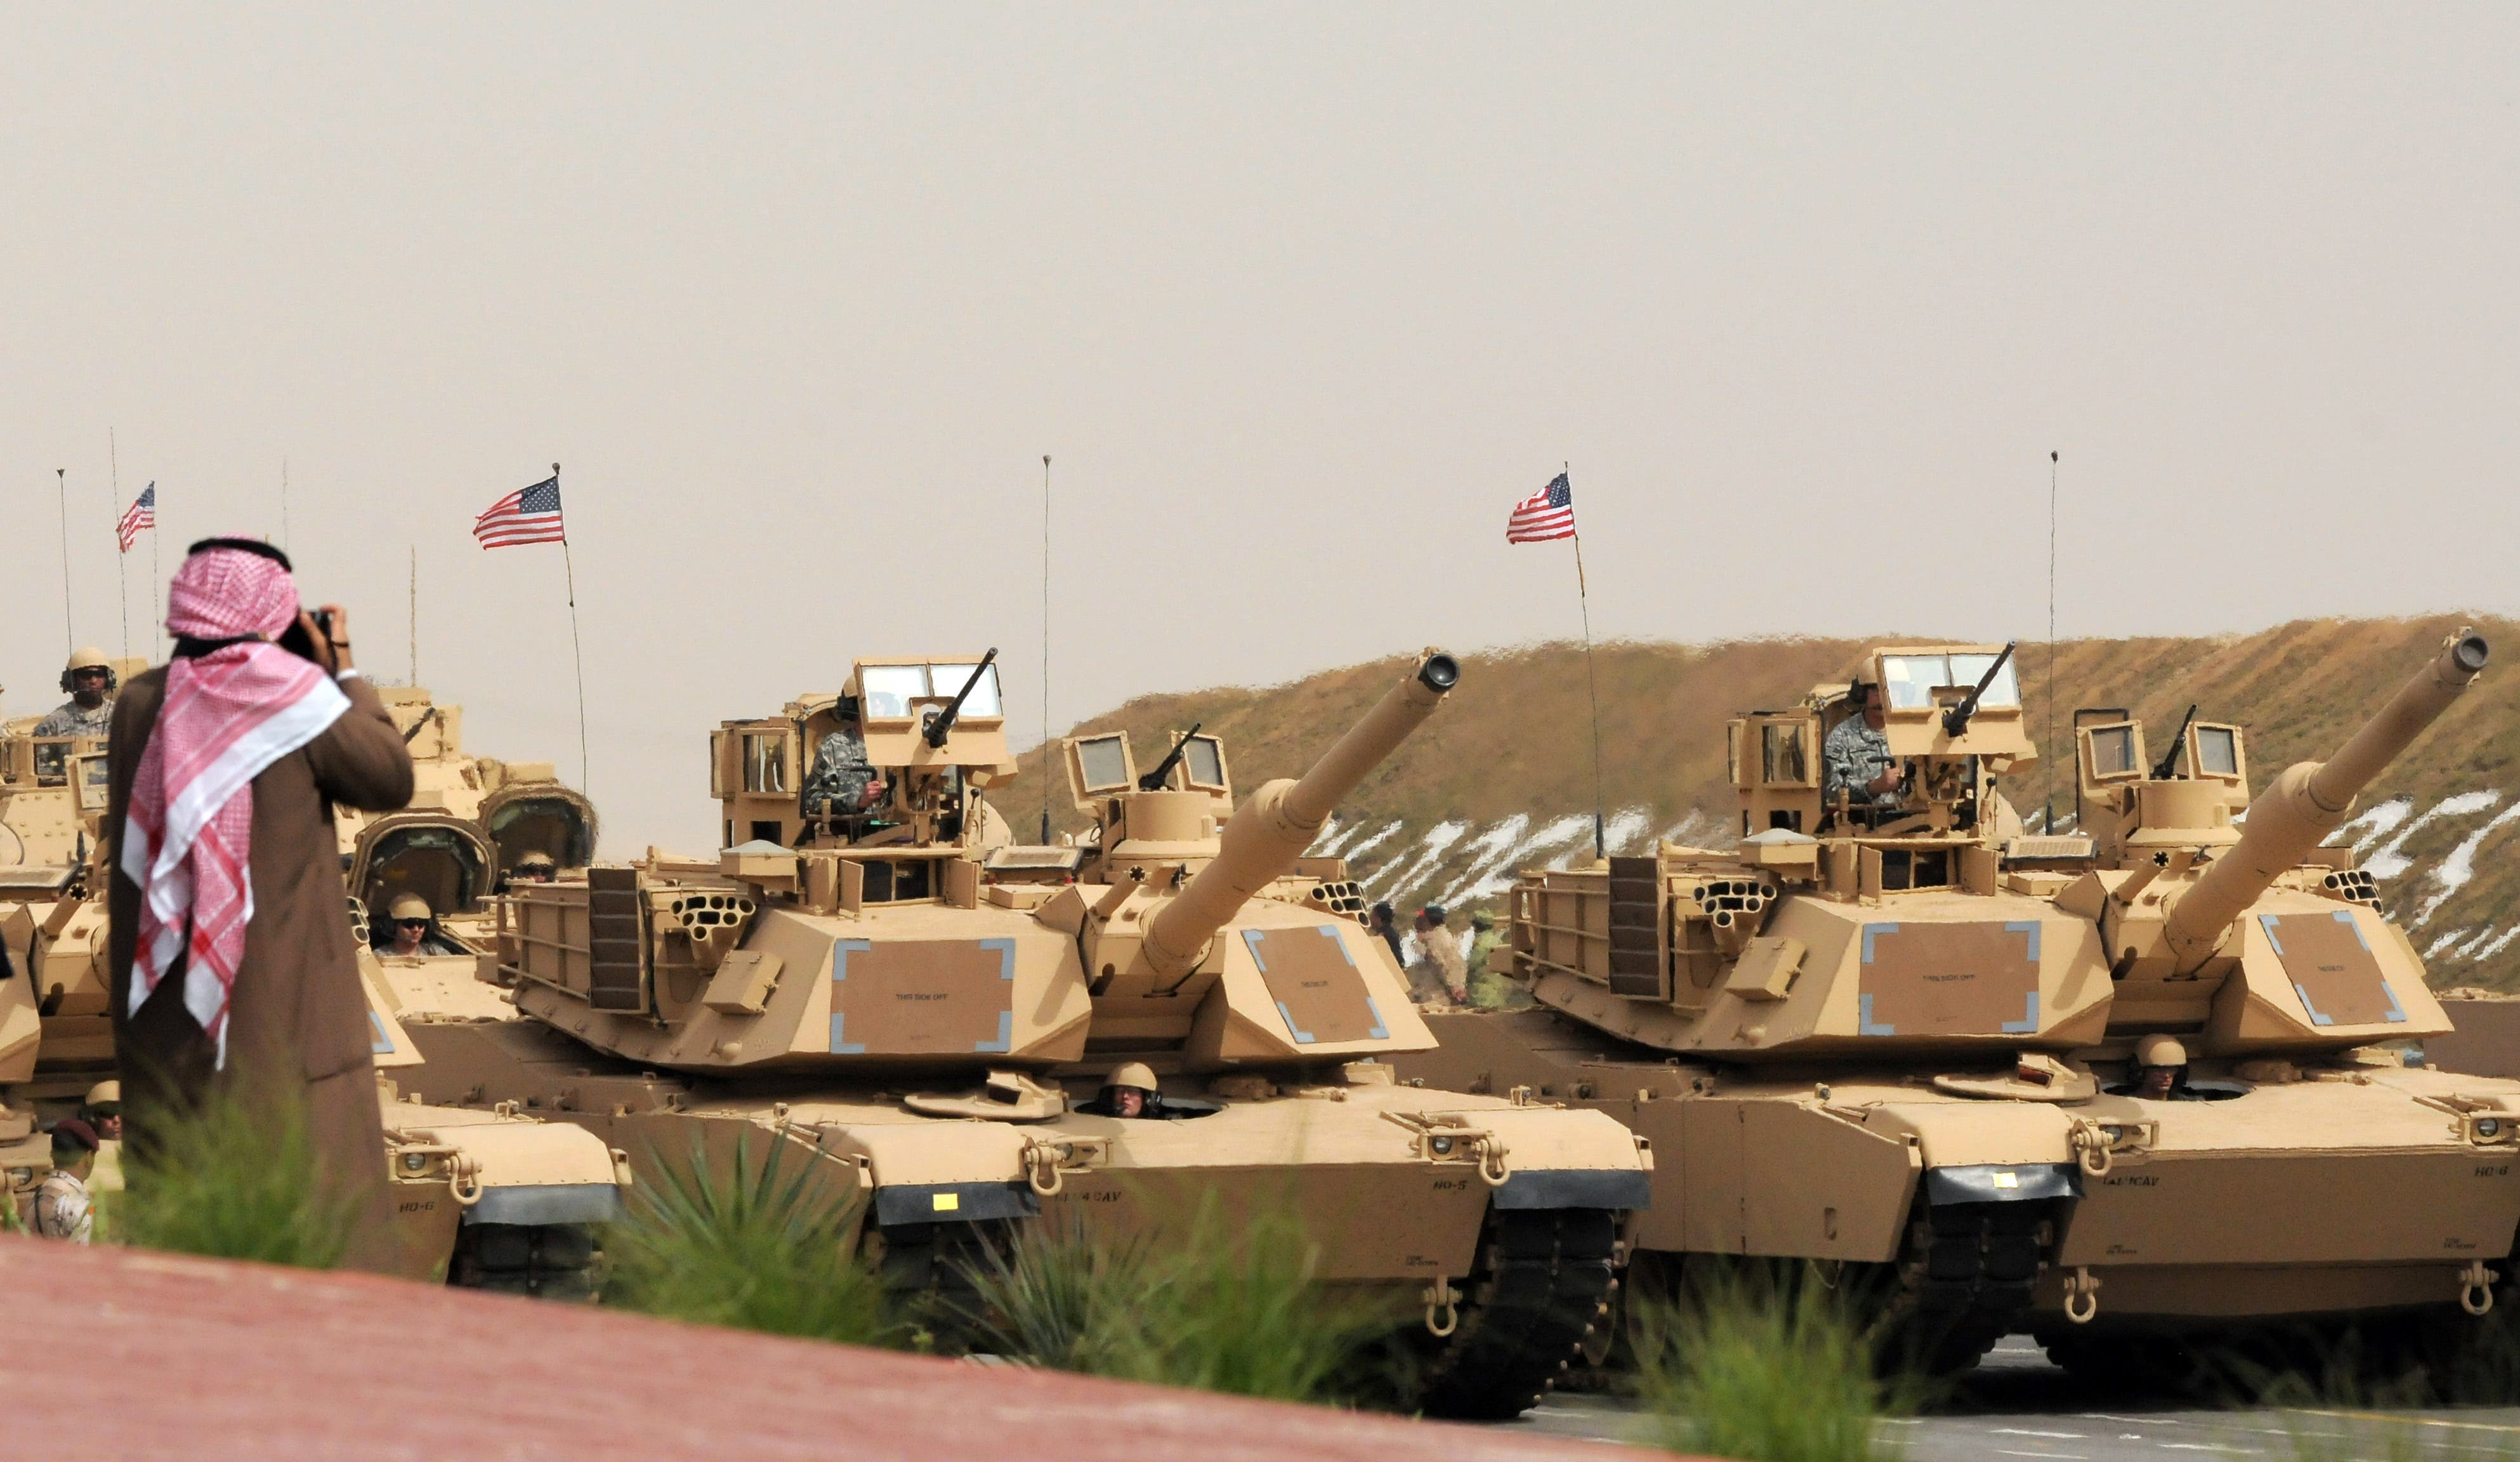 U.S. Army heavy battle tanks are seen during a military parade commemorating the 20th anniversary of the liberation of Kuwait from the 1990 Iraqi invasion. (AP)